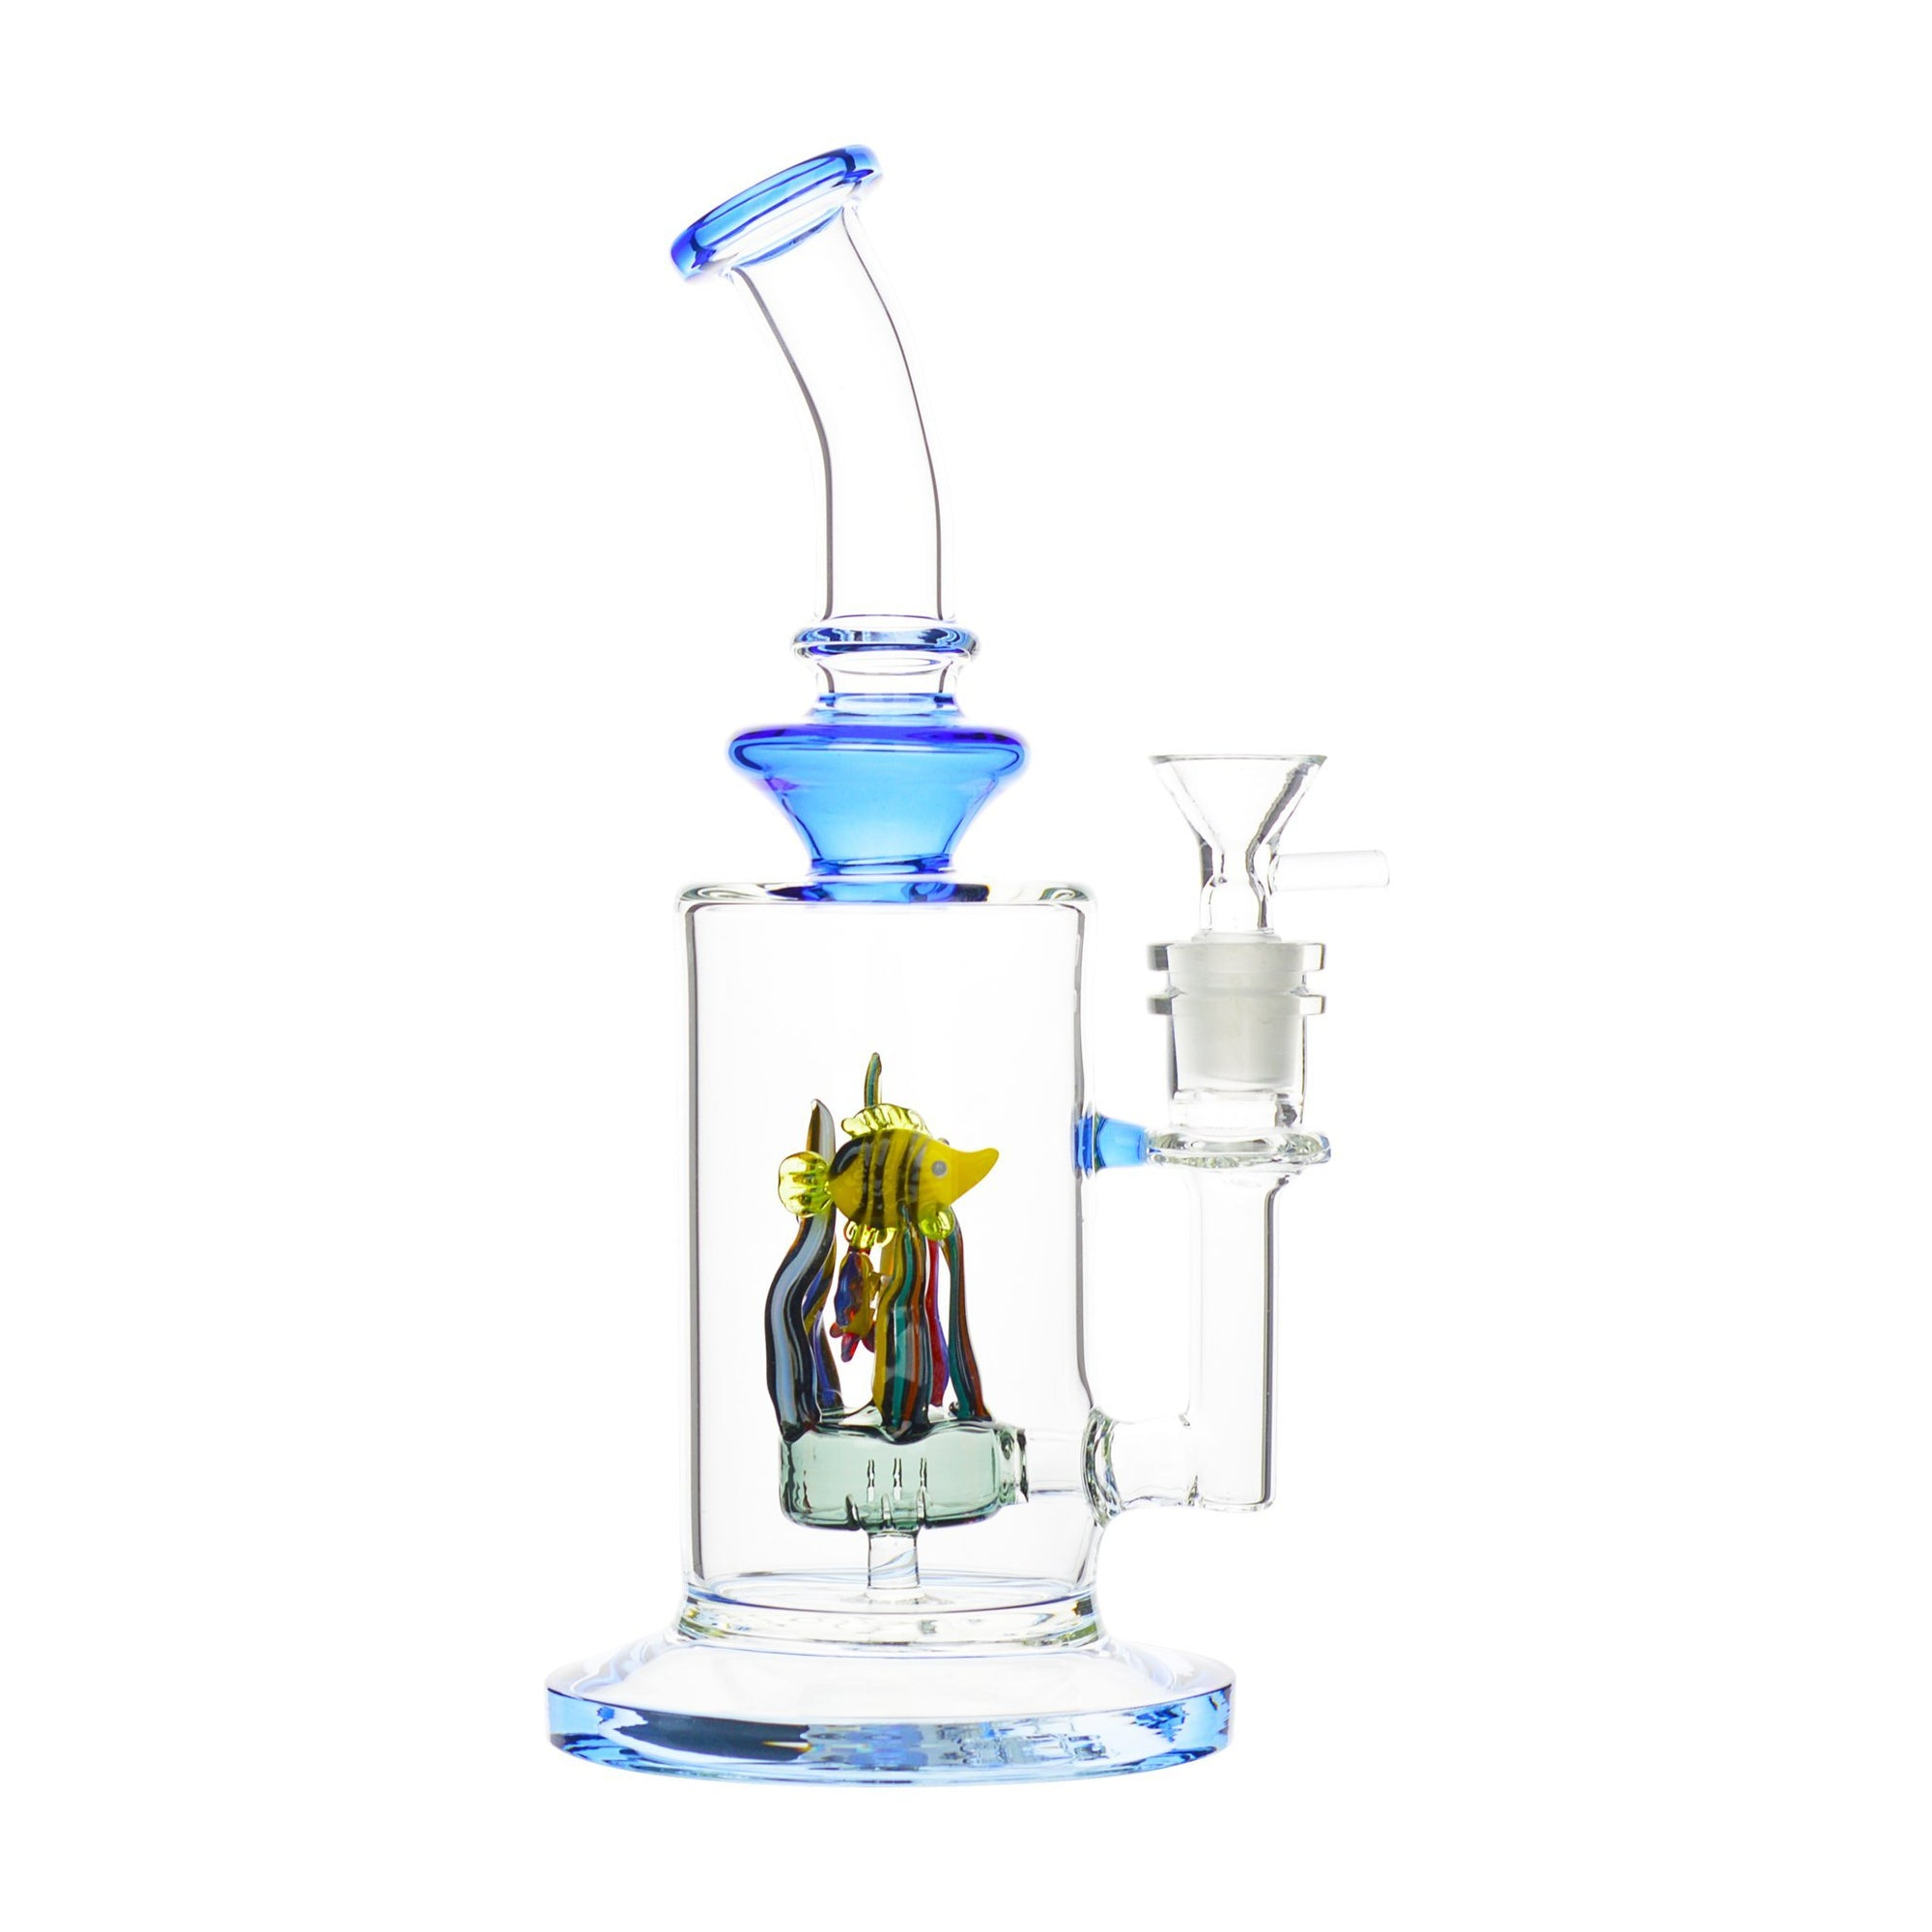 9.5-inch clear glass bong smoking device splash guards cone bowl with handle fish figures inside an aquarium look